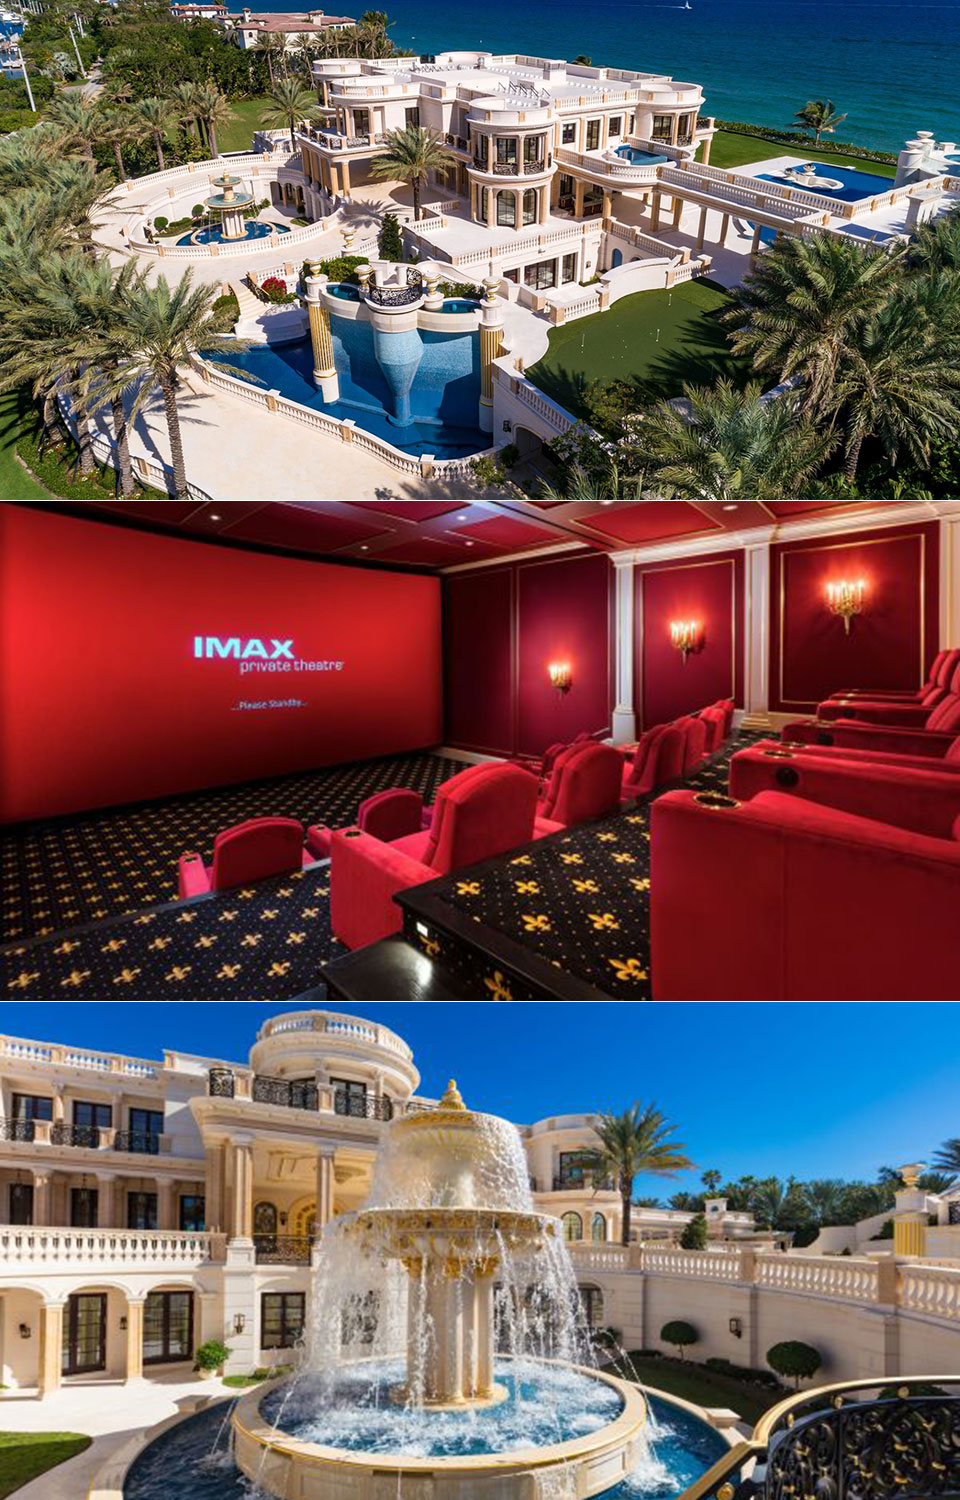 Le Palais Royal $159-Million Mansion